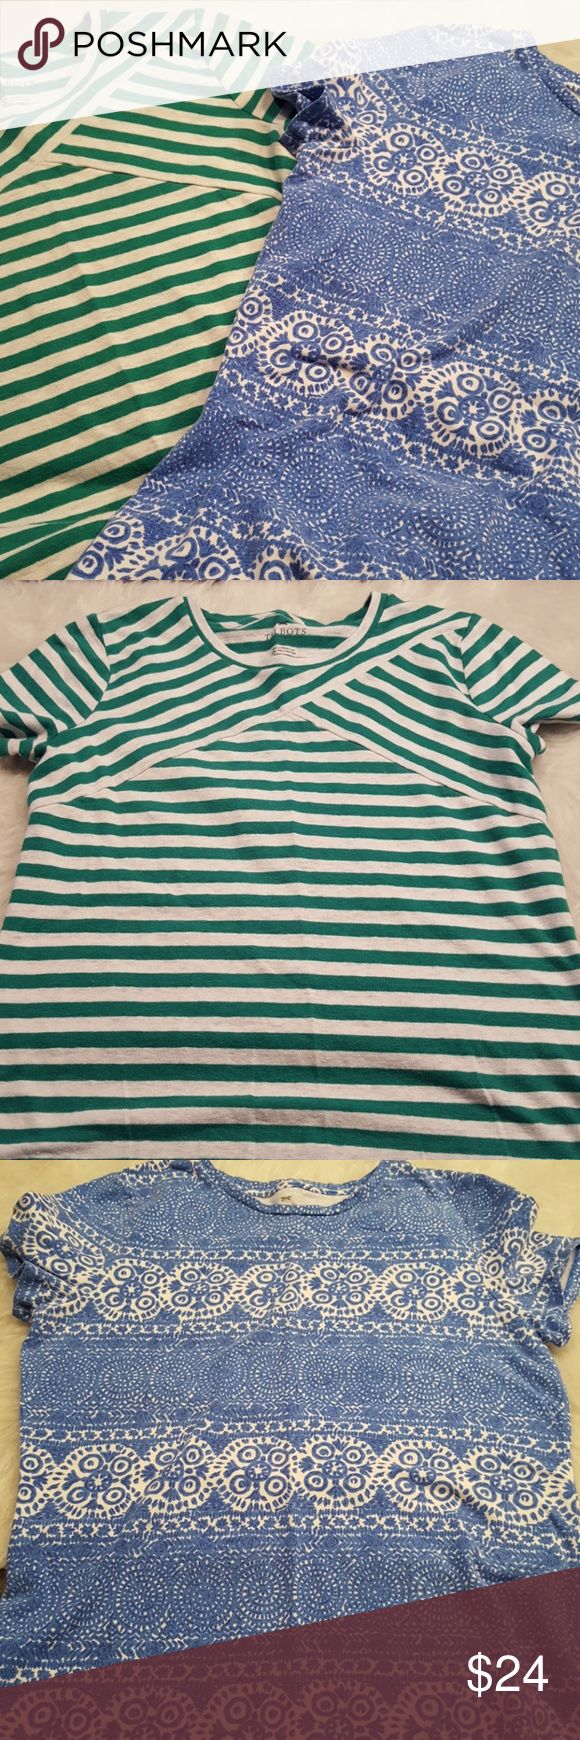 JUST IN🔶️Talbots Small Petite Tees Cotton, comfy, stylish. Green/white stripe and blue/white tile mosaic pattern. Short sleeves. 23in long. 17in bust flat. Talbots Tops Tees - Short Sleeve